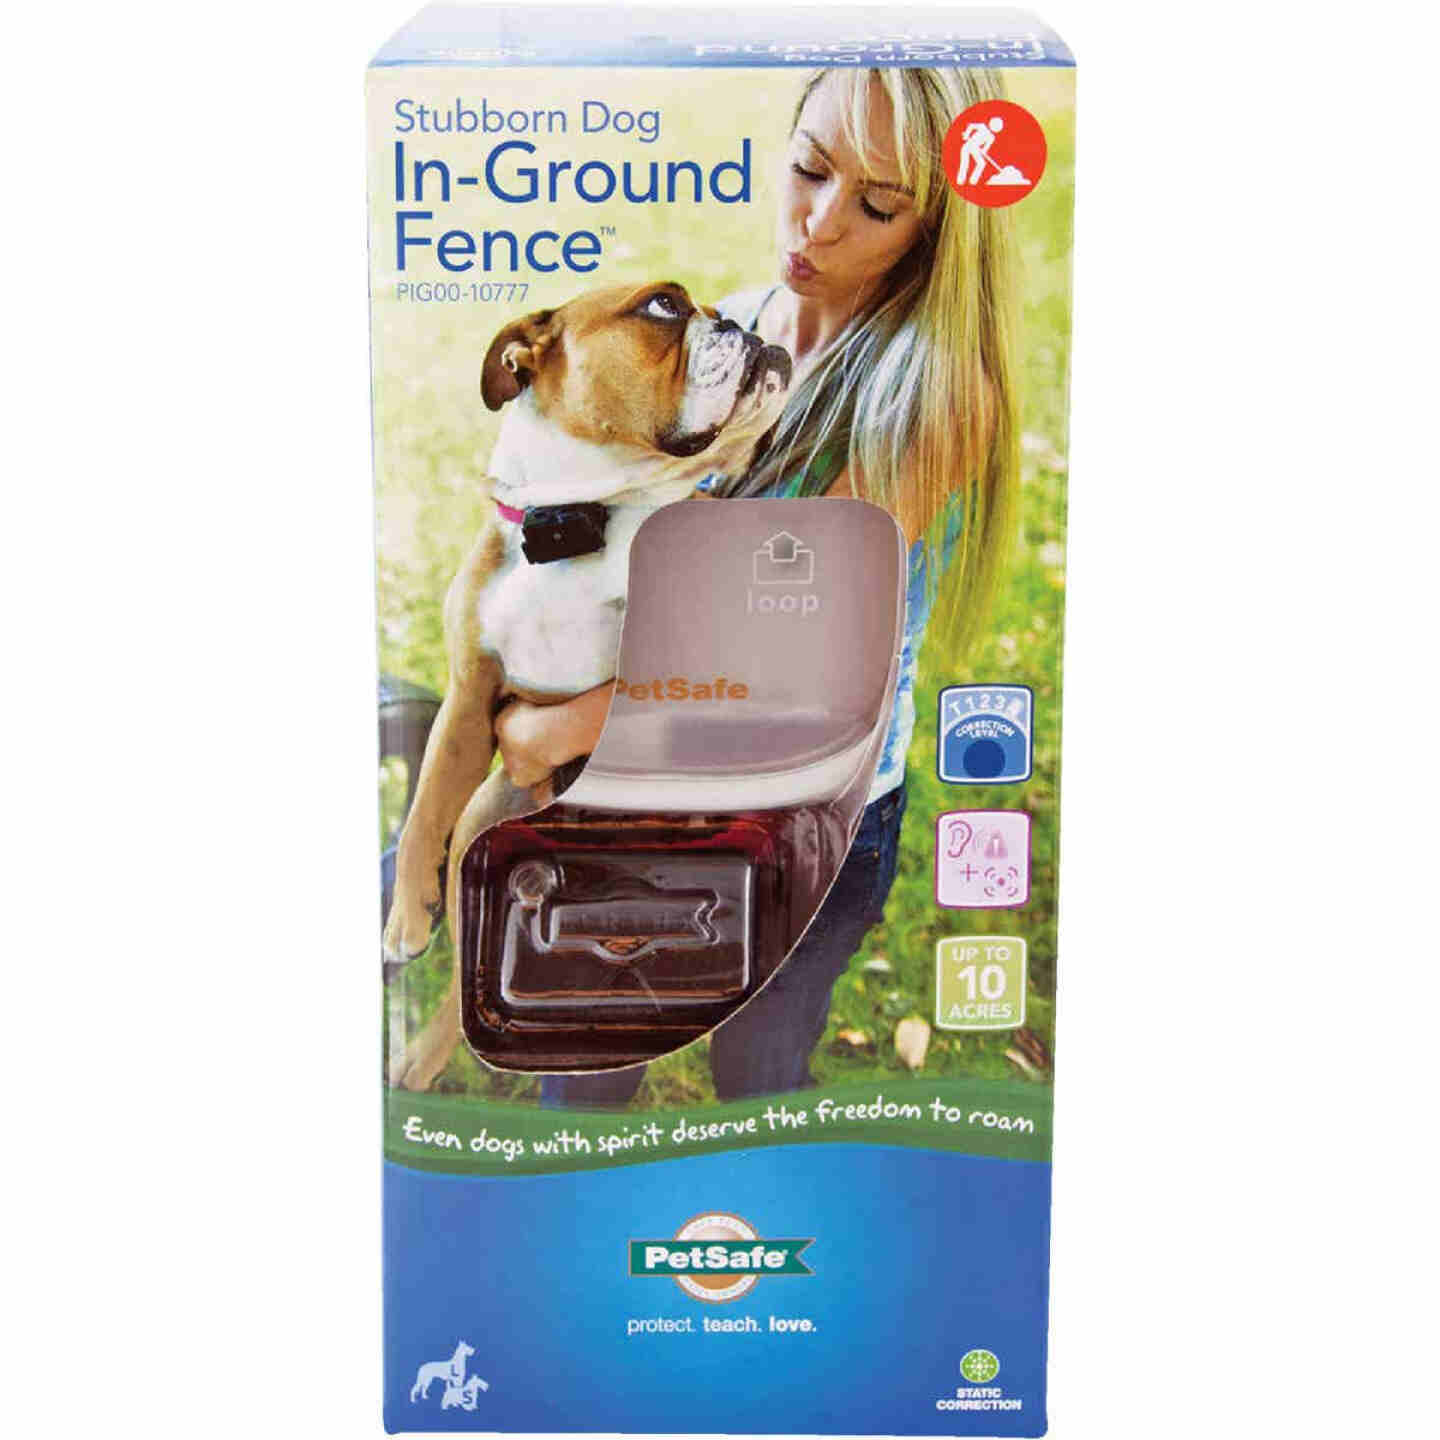 Petsafe Stubborn Dog In-Ground Up to 10-Acre Radio Fence Image 1